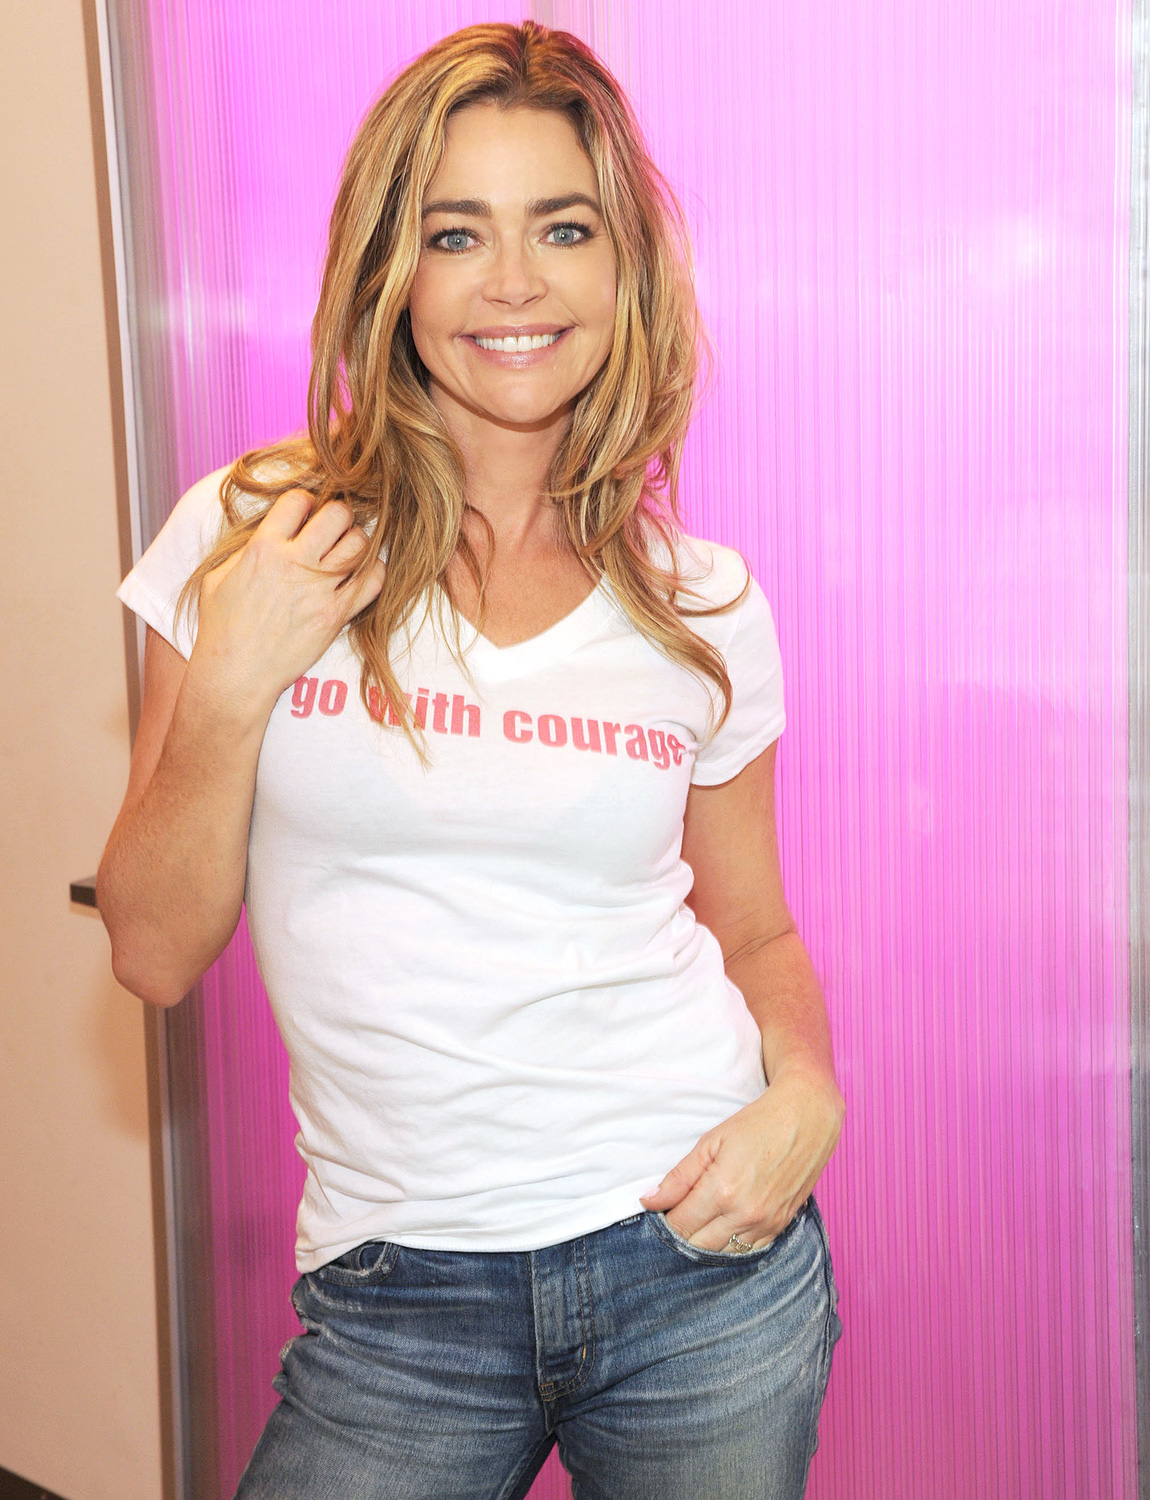 Denise Richards Promoting the Cancer Charity Go With Courage